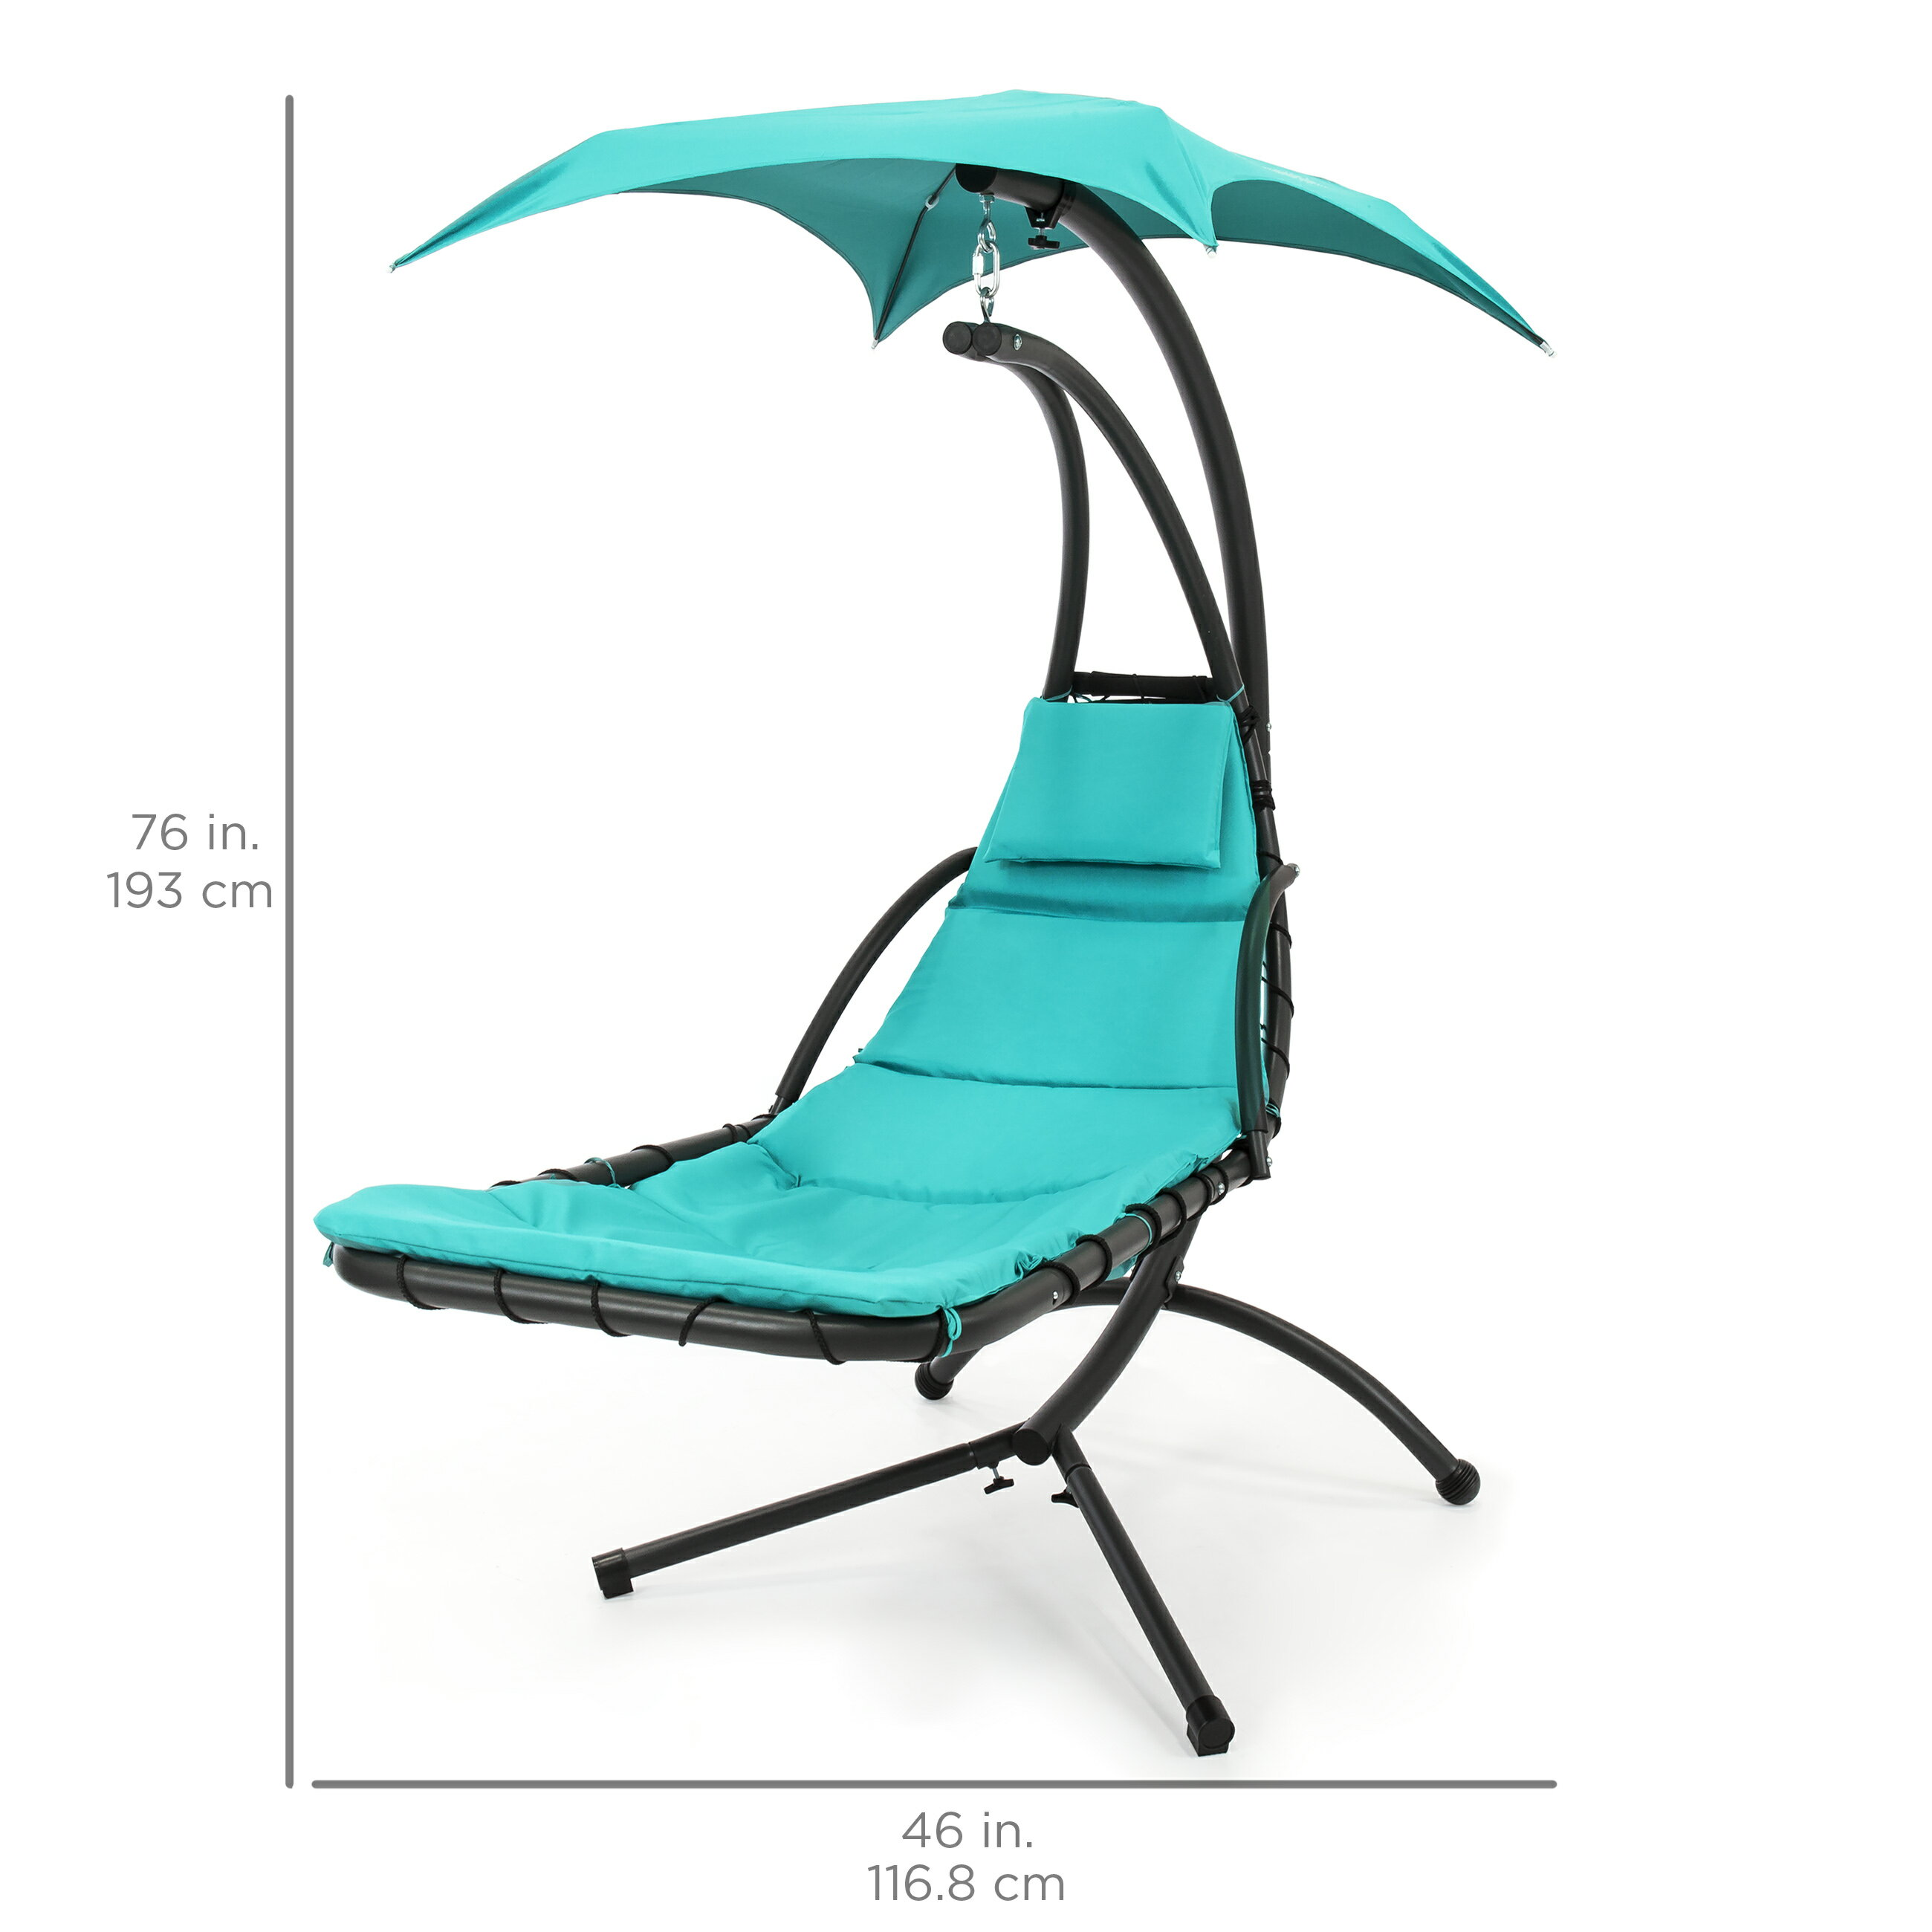 Best Choice Products Hanging Chaise Lounger Chair Arc Stand Air Porch Swing Hammock Chair Canopy (Teal) 4